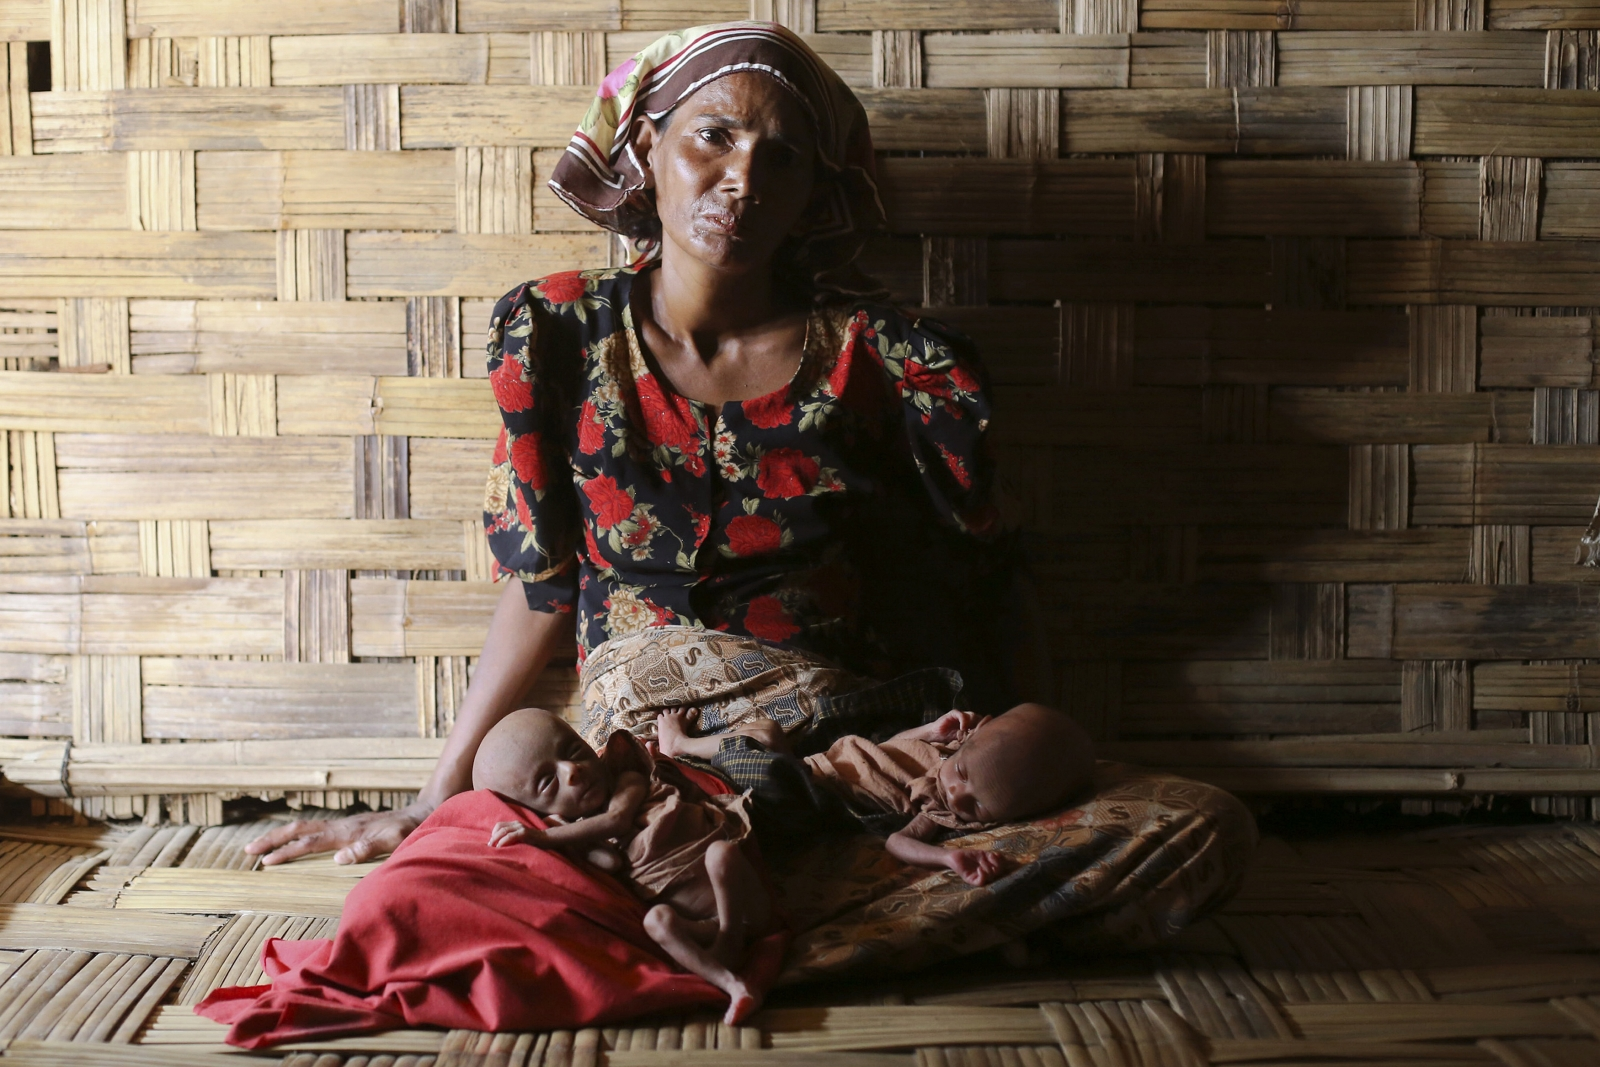 Displaced Rohingya woman Norbagoun carries her severely malnourished 25-day-old twins in her lap in their house at the Dar Paing camp for internally displaced people in Sittwe, Rakhine state